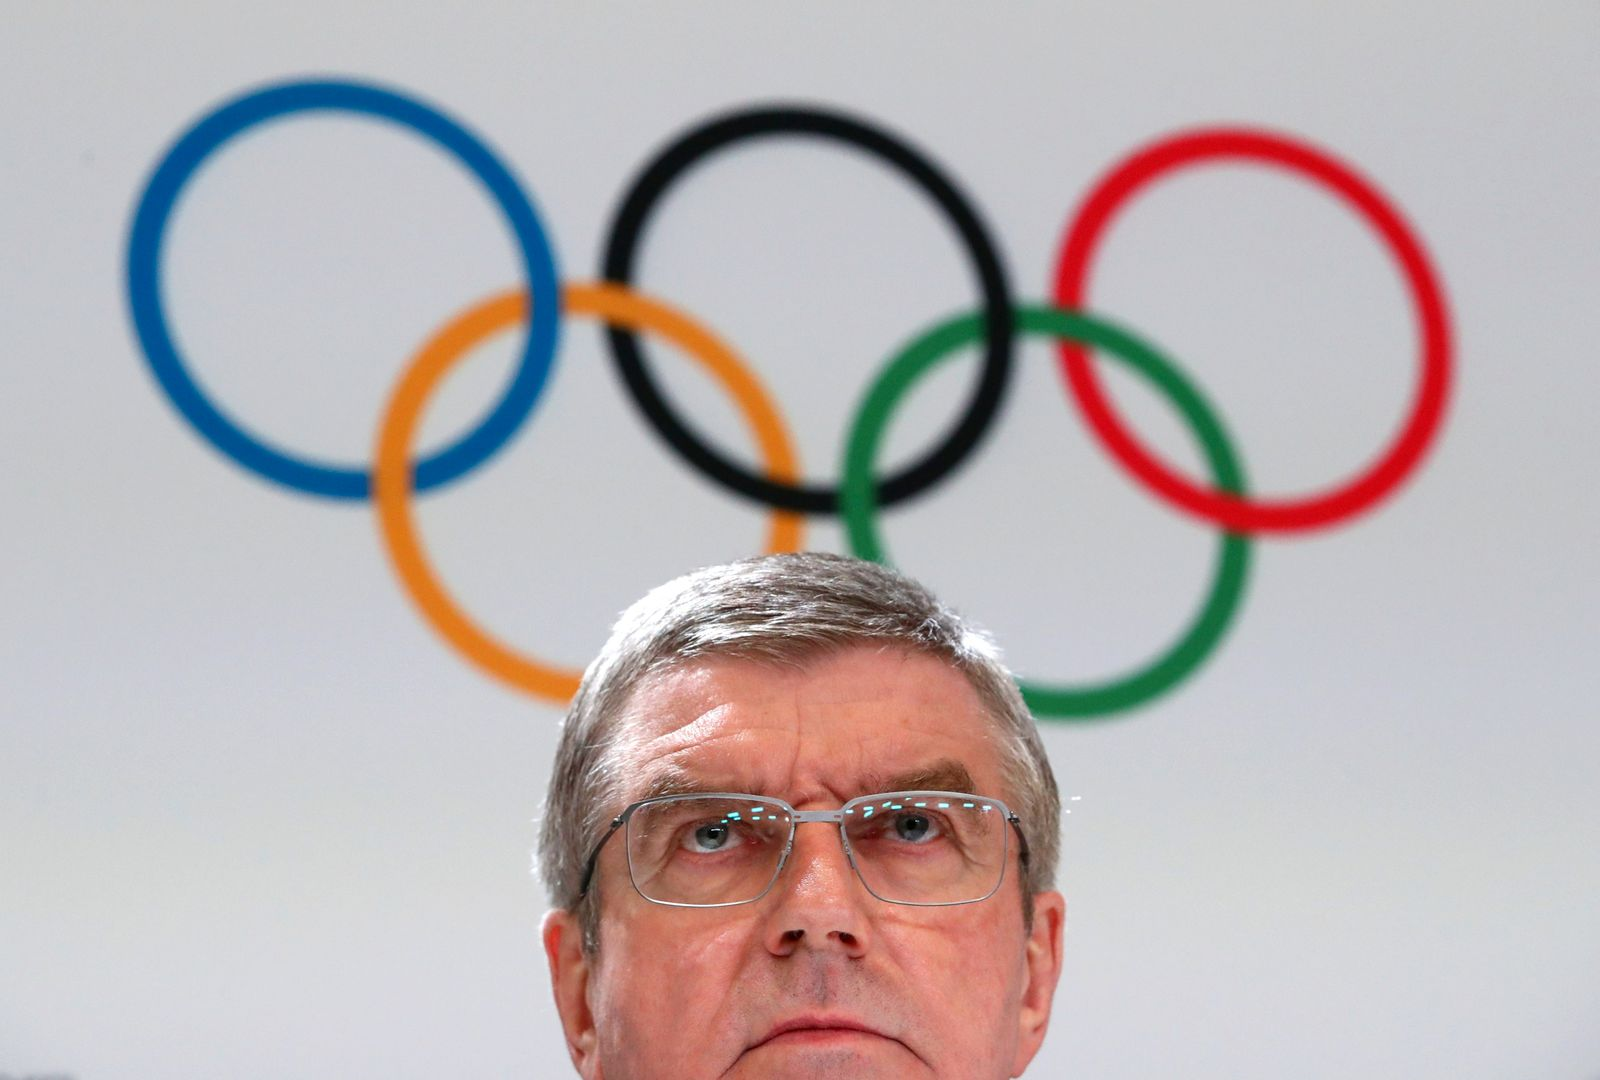 Bach President of the IOC attends a news conference after the 135th Session in Lausanne